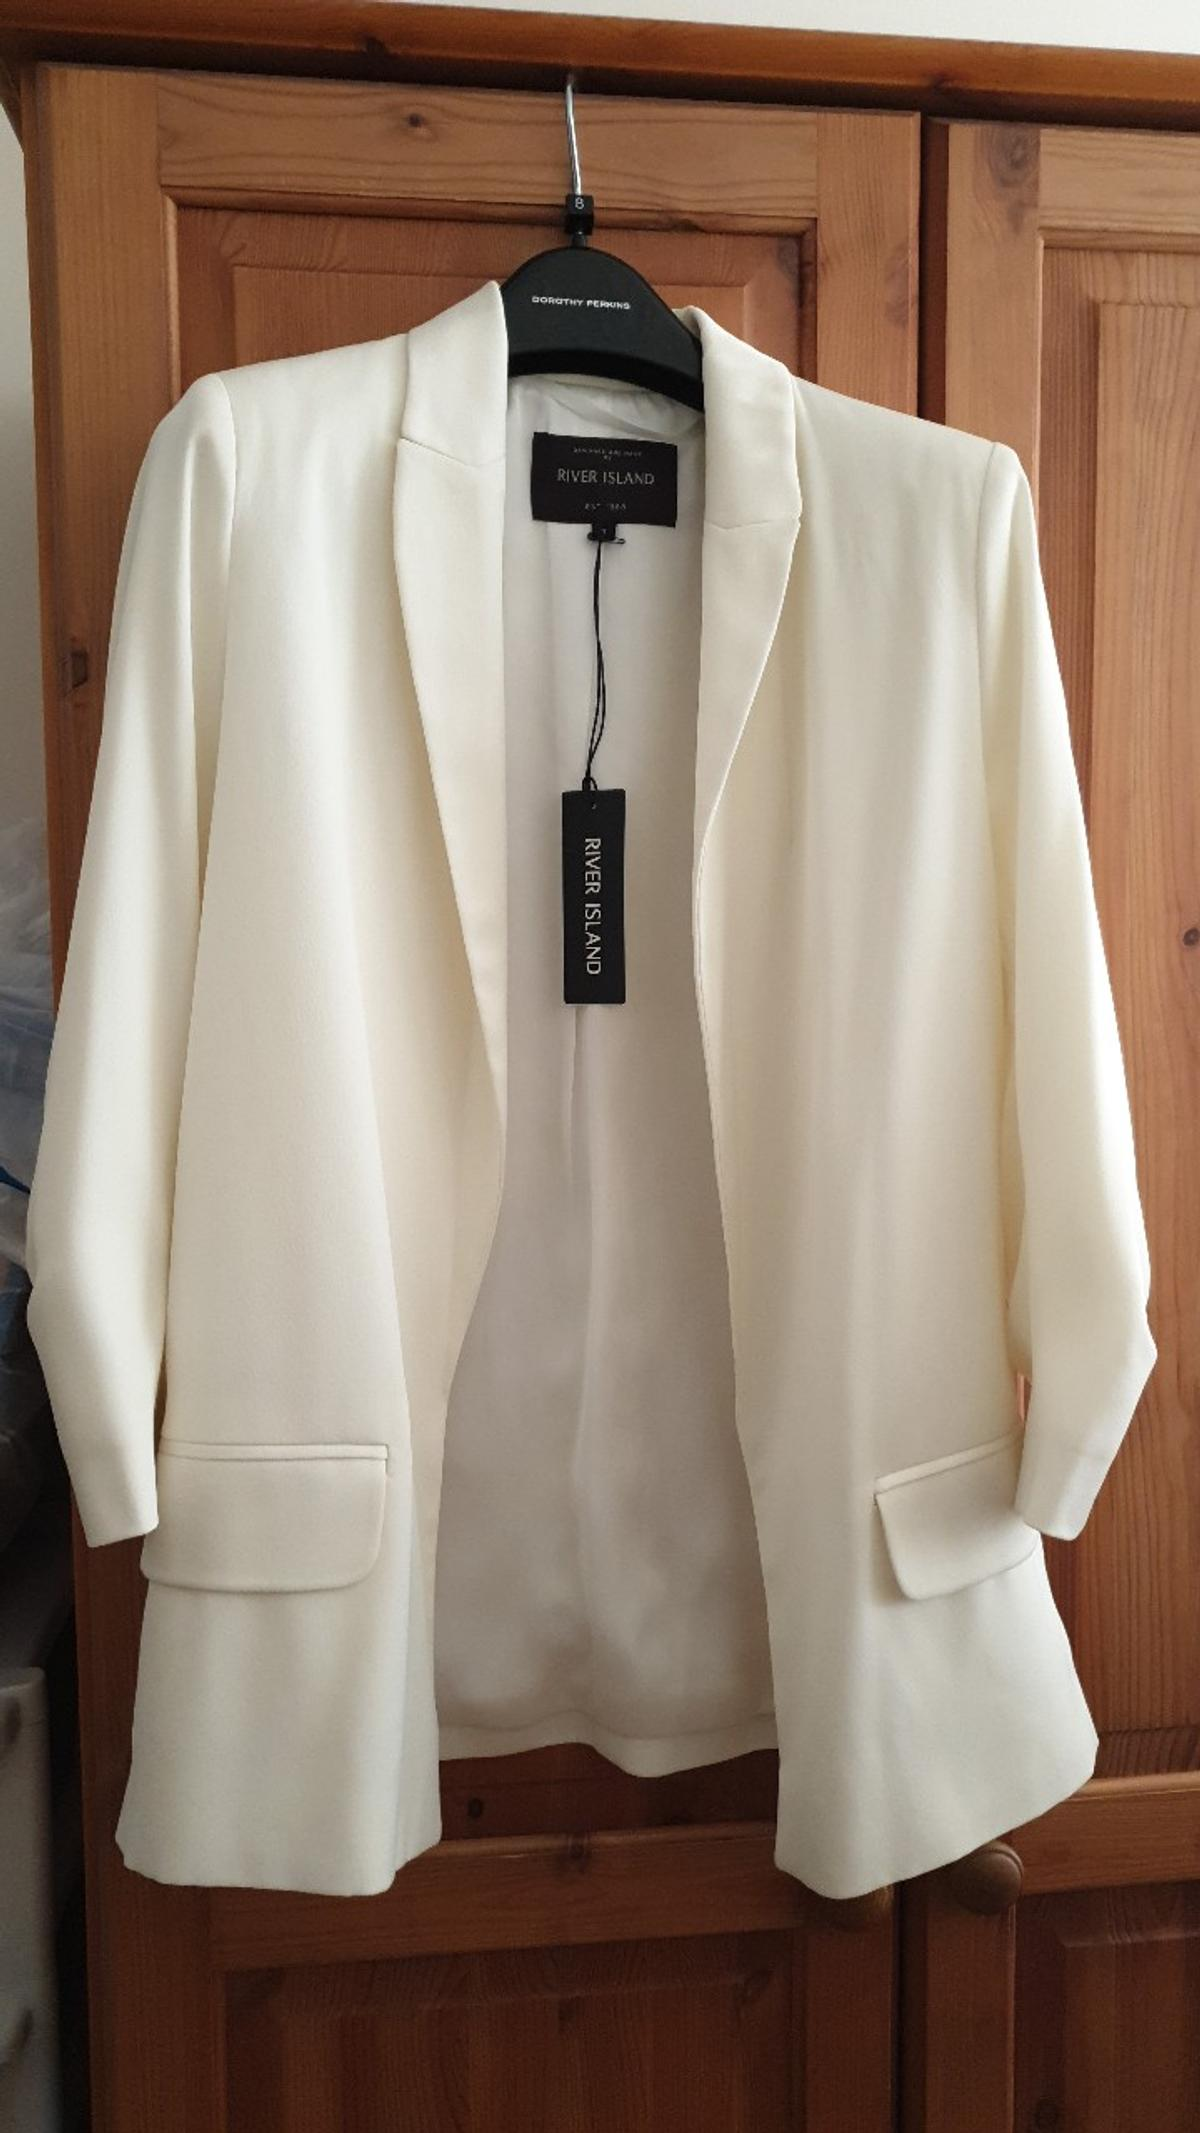 2x river island blazers size 8 .  black is excellent condition but missing label.  off white/cream is BNWT.  rrp £60.  listing is for both blazers.  collection from WV11